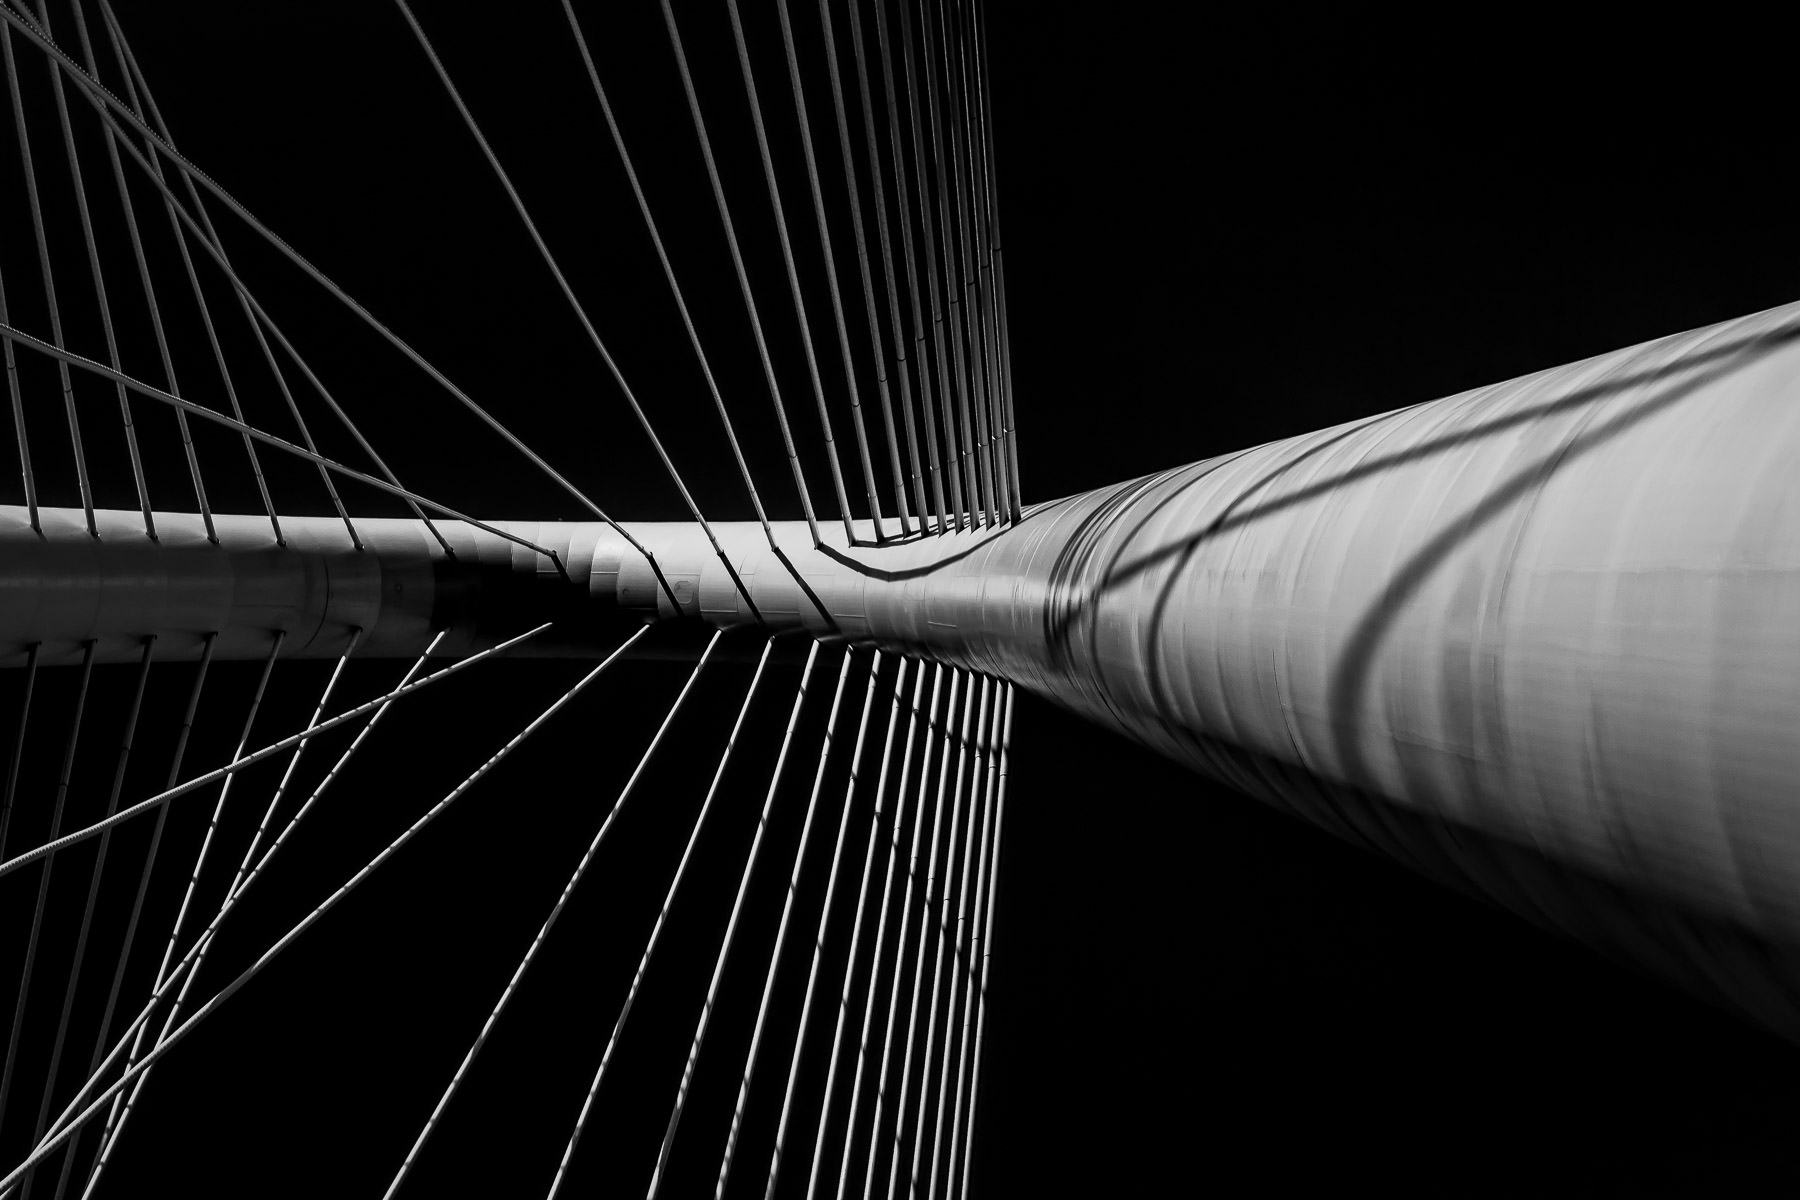 Abstract detail of the Santiago Calatrava-designed Margaret Hunt Hill Bridge's arch and attached cables rising into the Dallas sky.